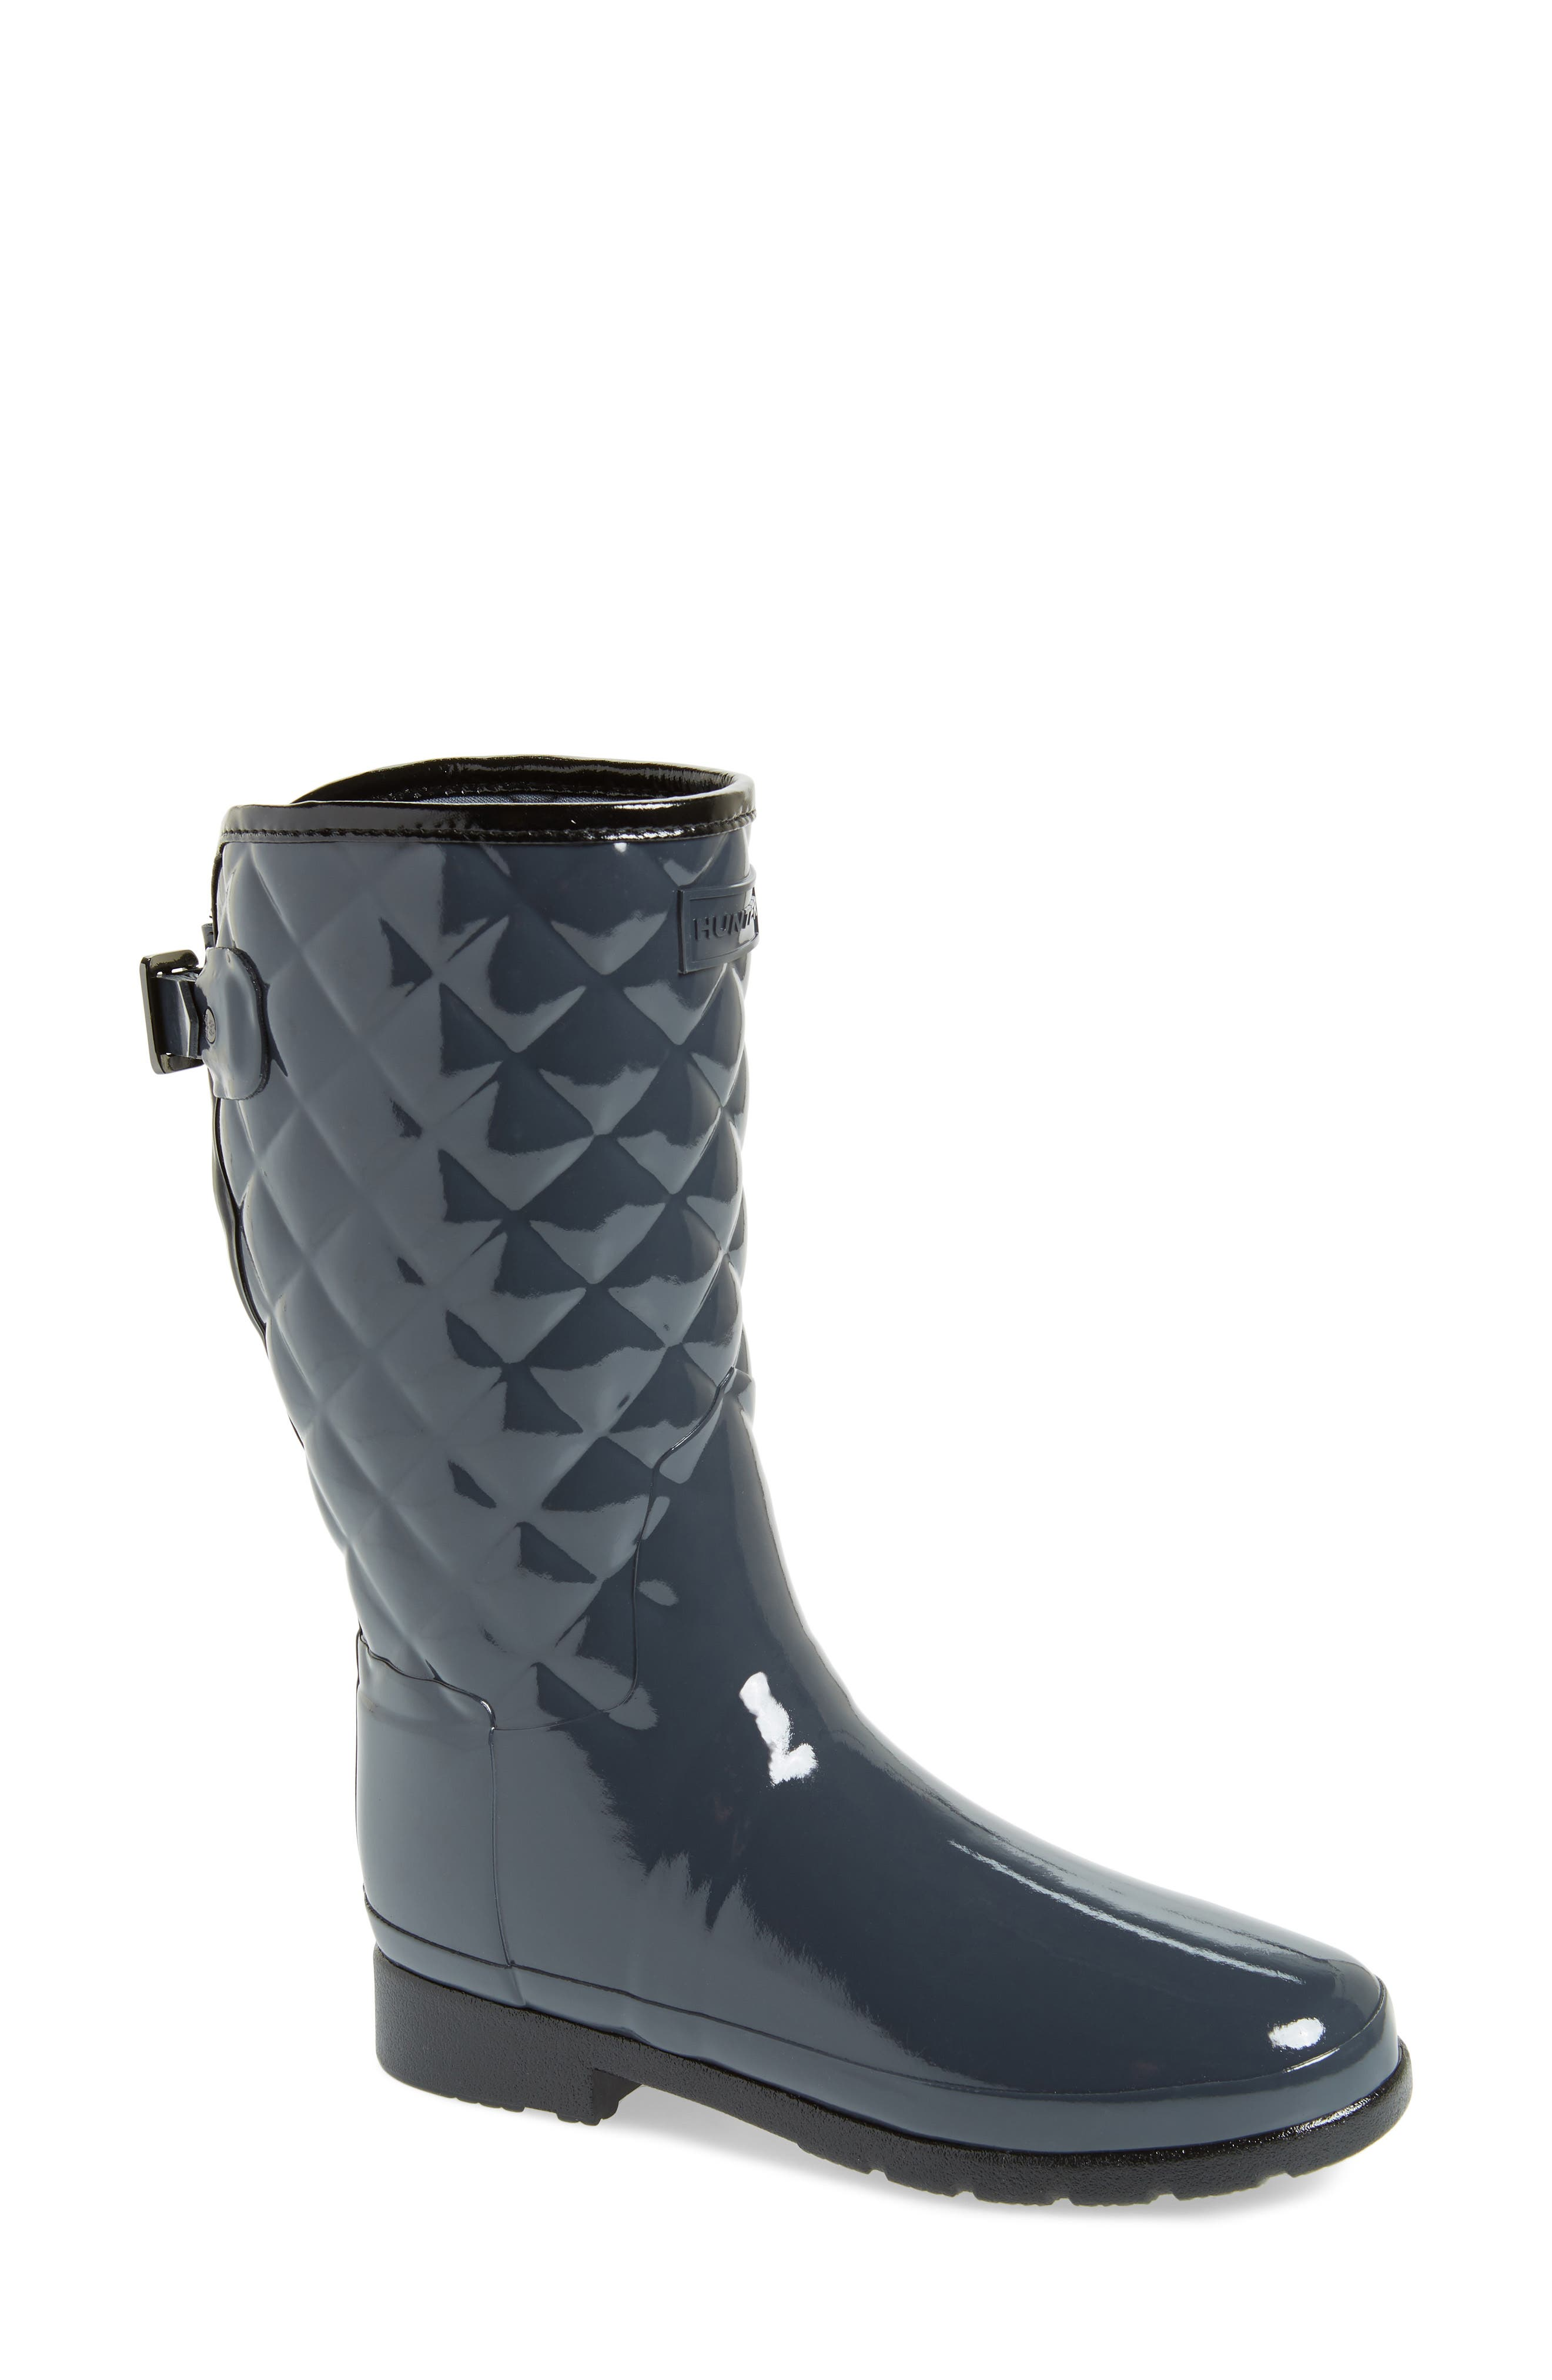 Refined High Gloss Quilted Short Waterproof Rain Boot,                             Main thumbnail 1, color,                             DARK SLATE